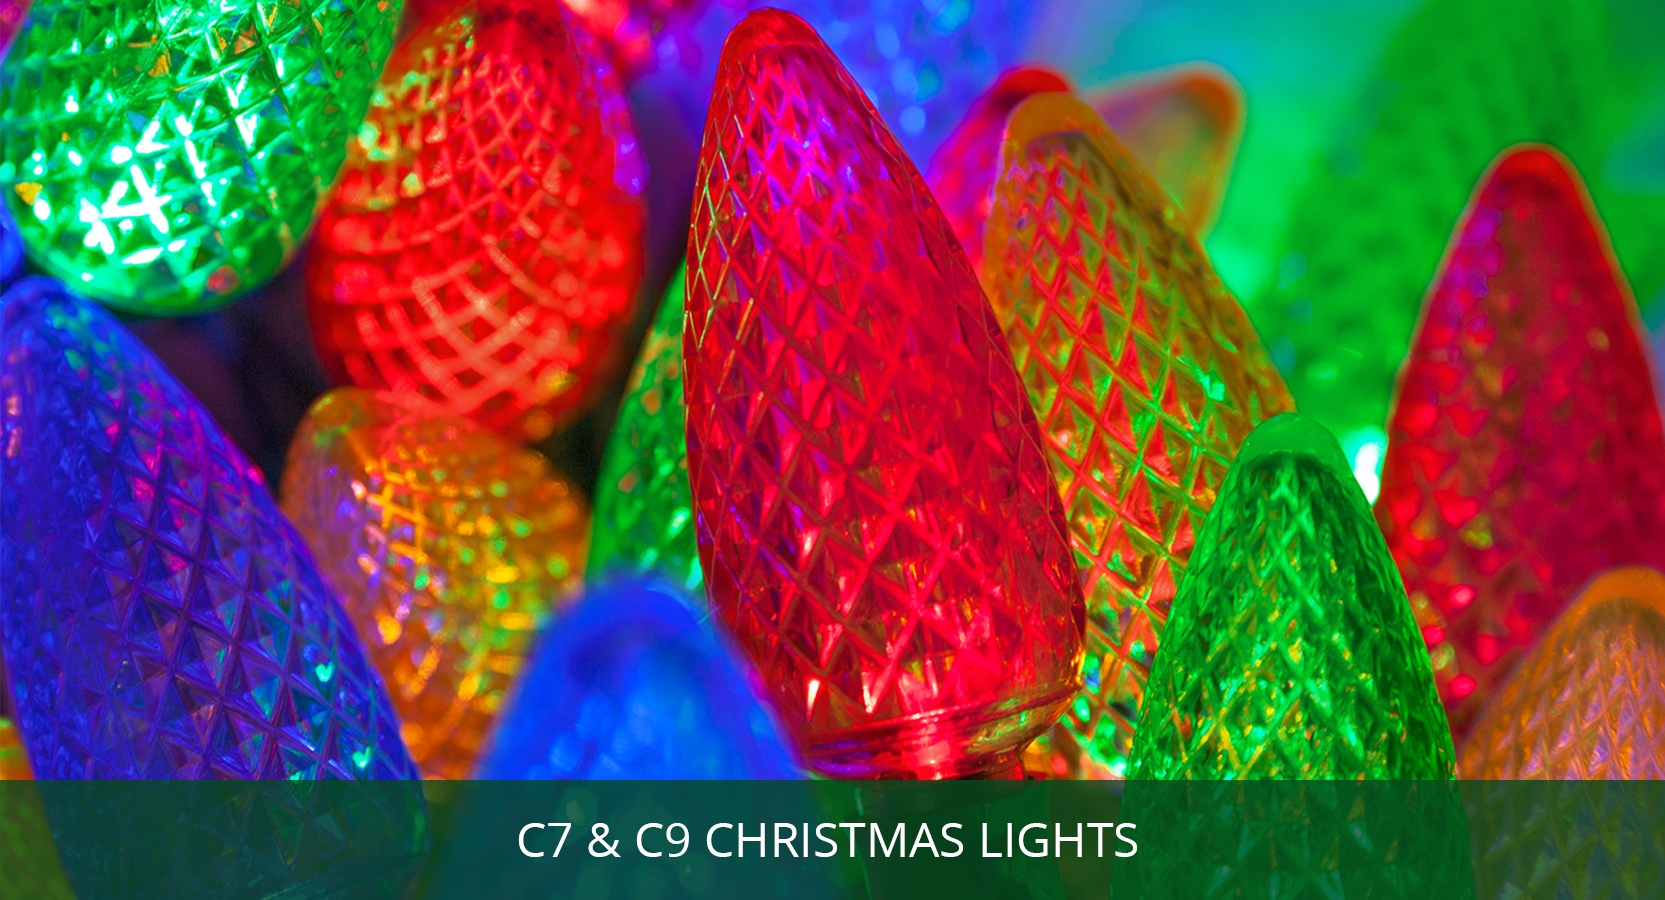 C7 & C9 Christmas Lights